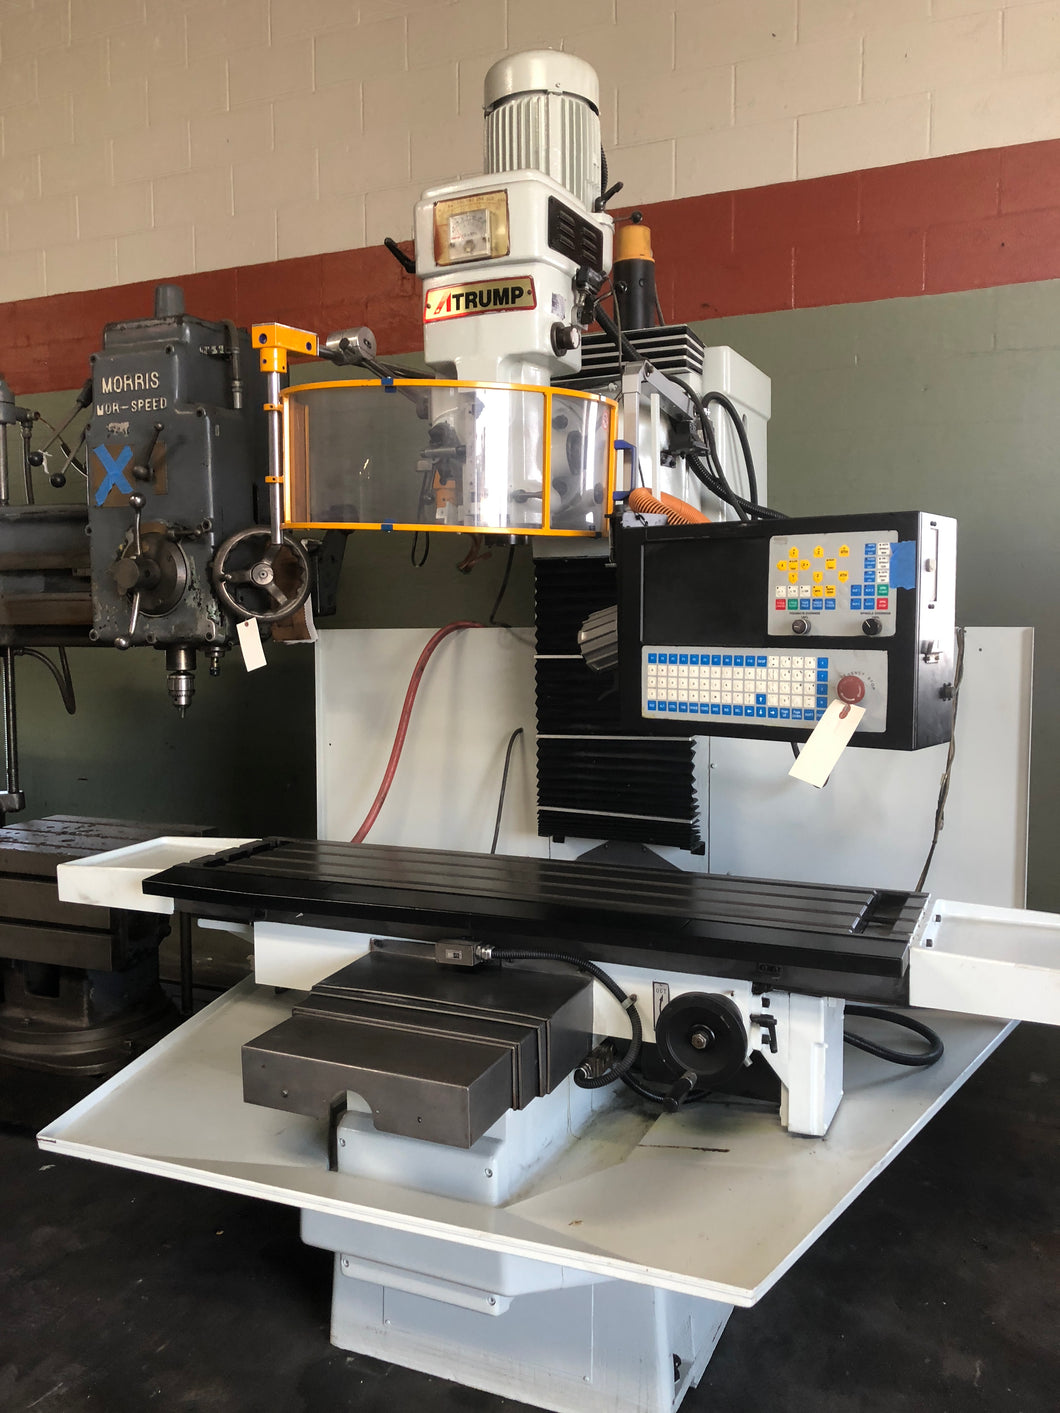 NICE ATRUMP 3-AXIS CNC BED MILL / WITH CENTROID M400 CONTROL /220VOLTS/ 3PH/4HP